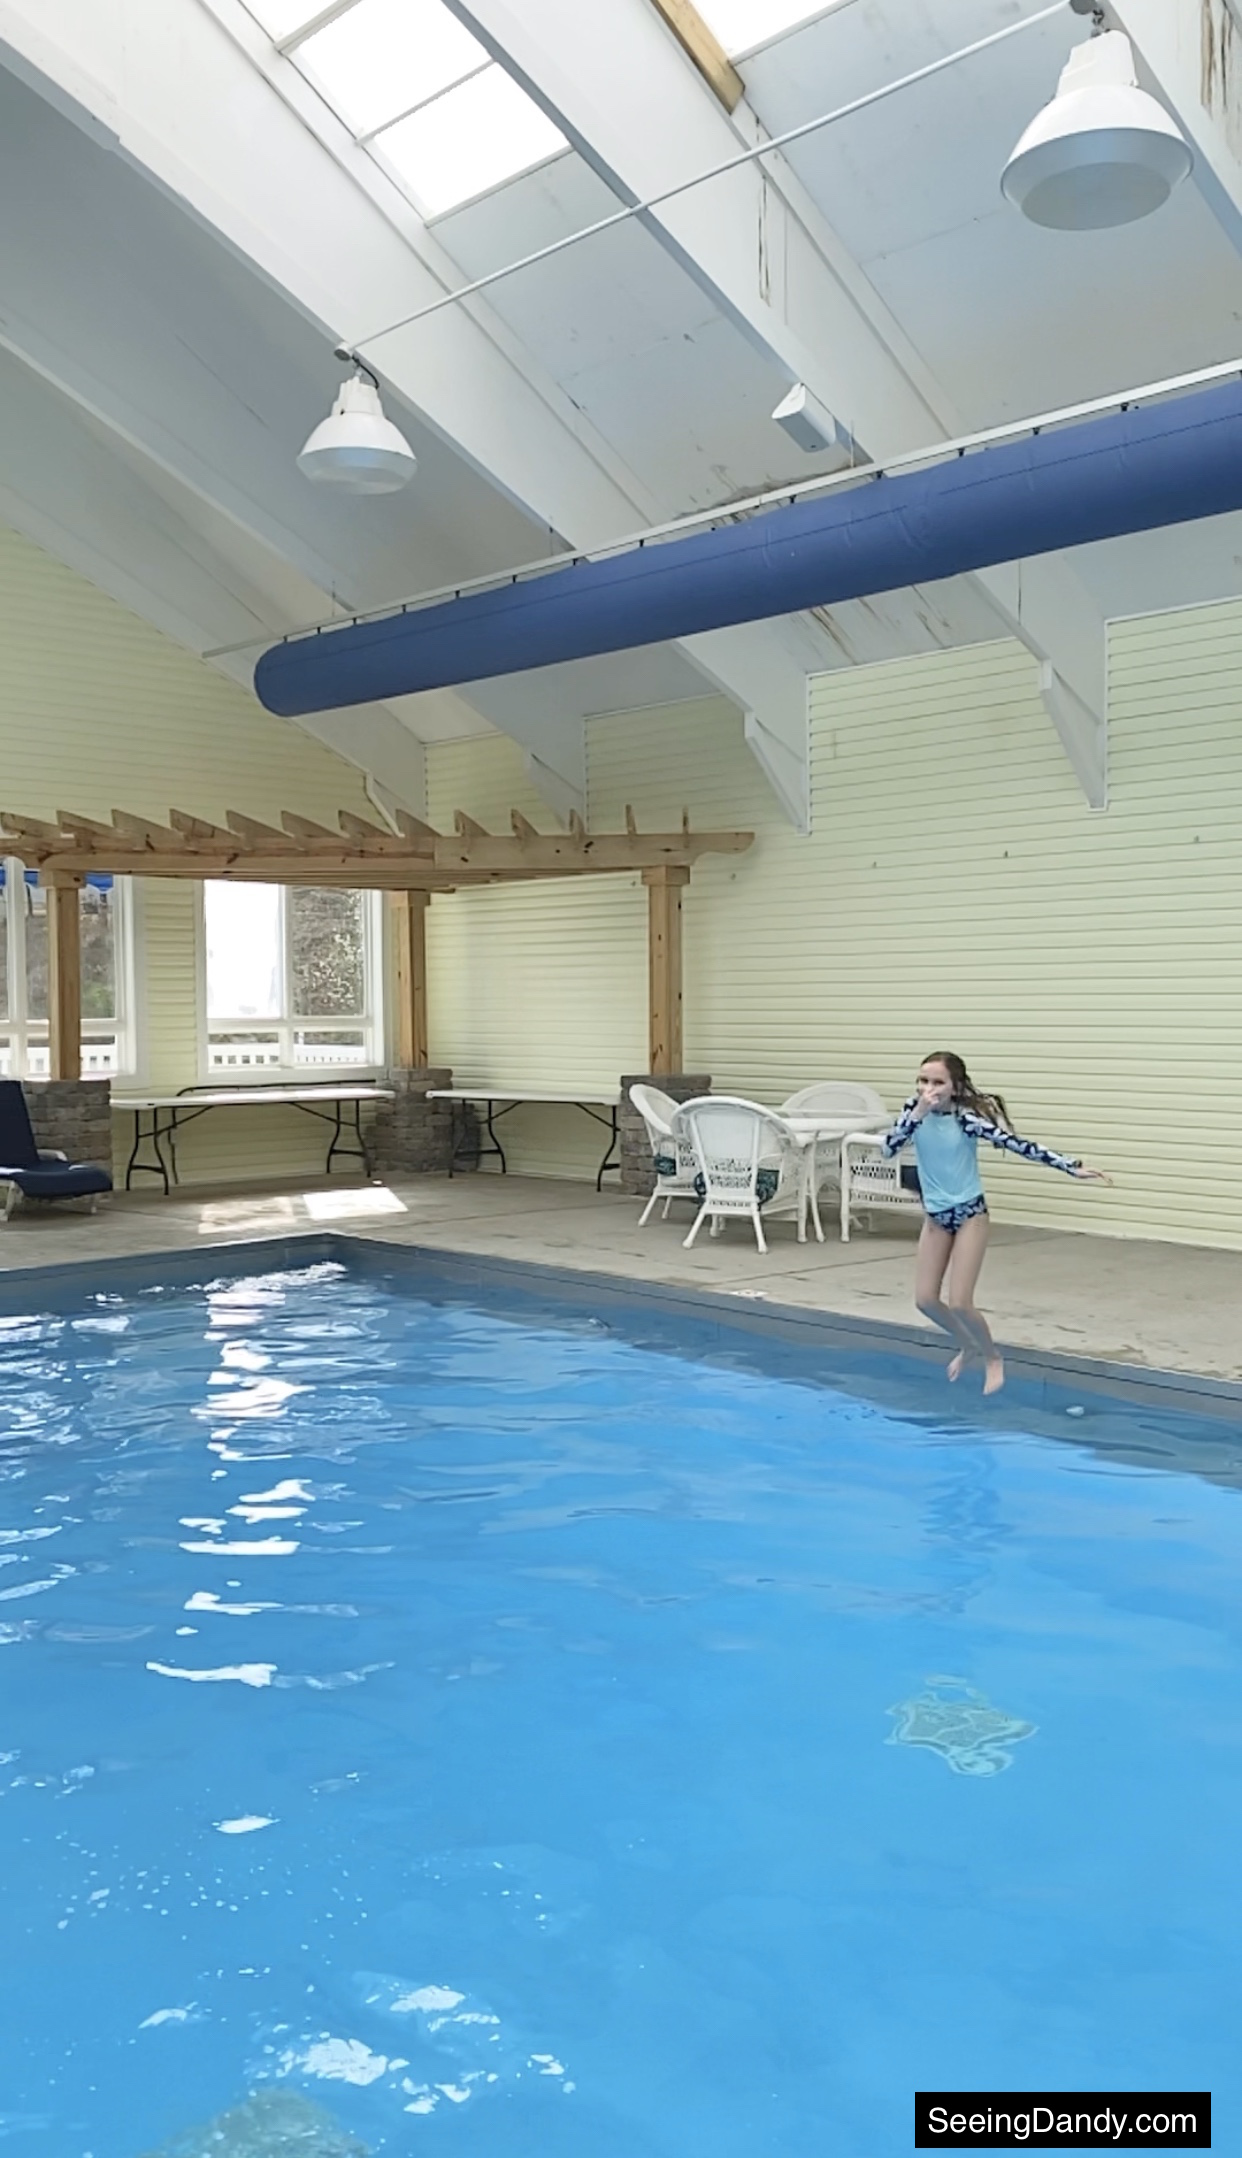 green turtle bay indoor pool, grand rivers kentucky pool, grand rivers resort, pool jumping, family travel